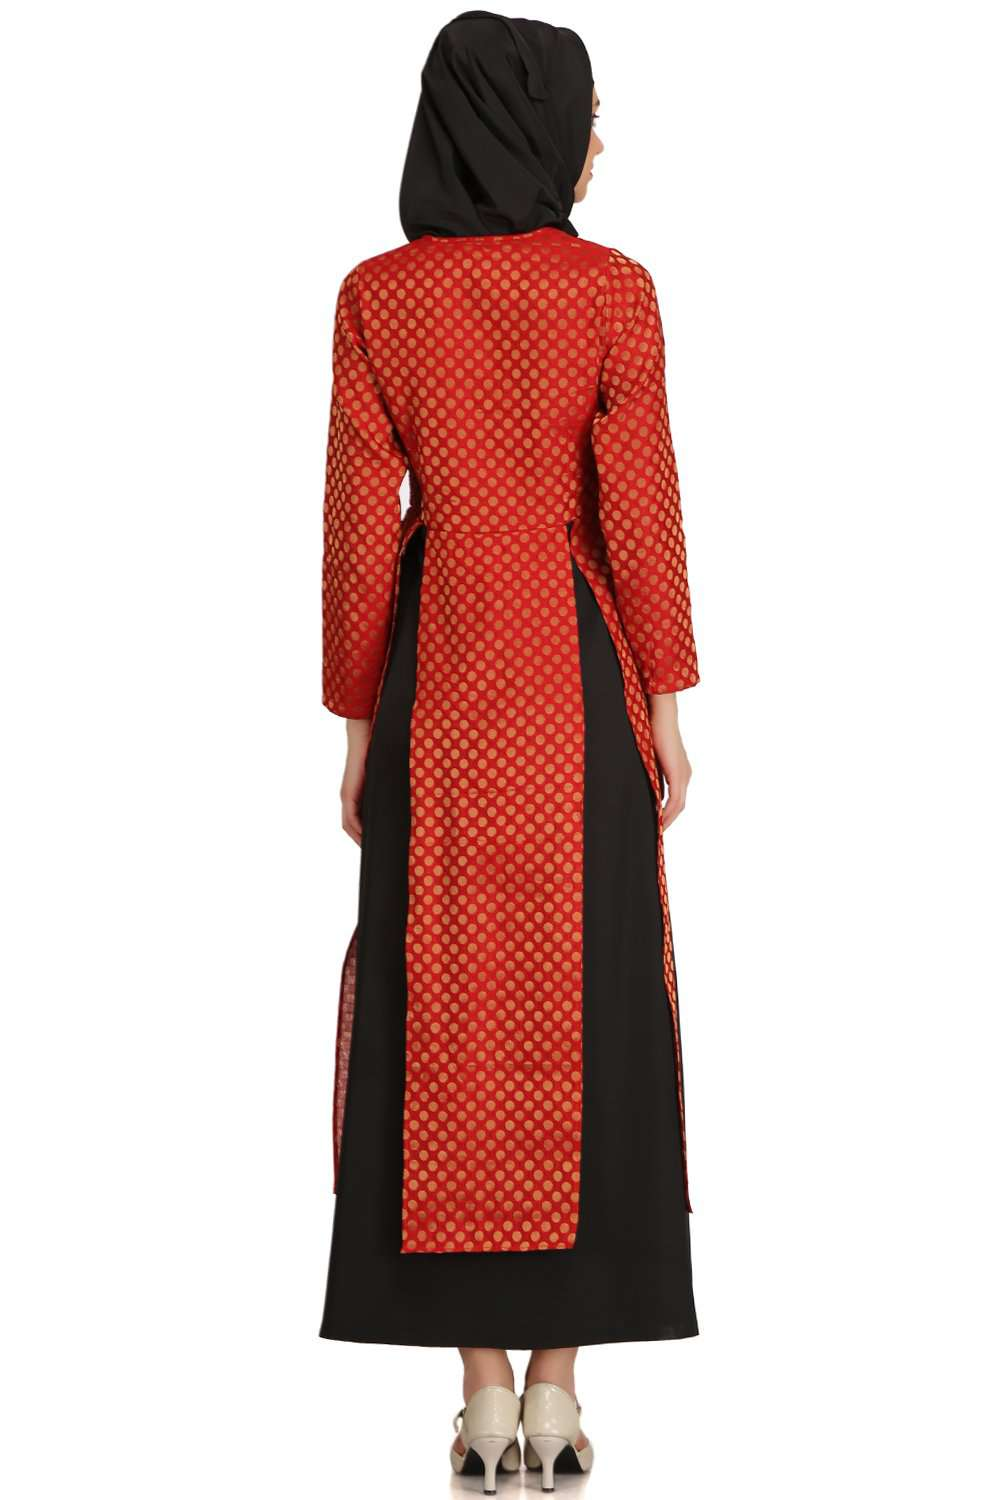 Sameera Red Brocade & Black Nida Abaya